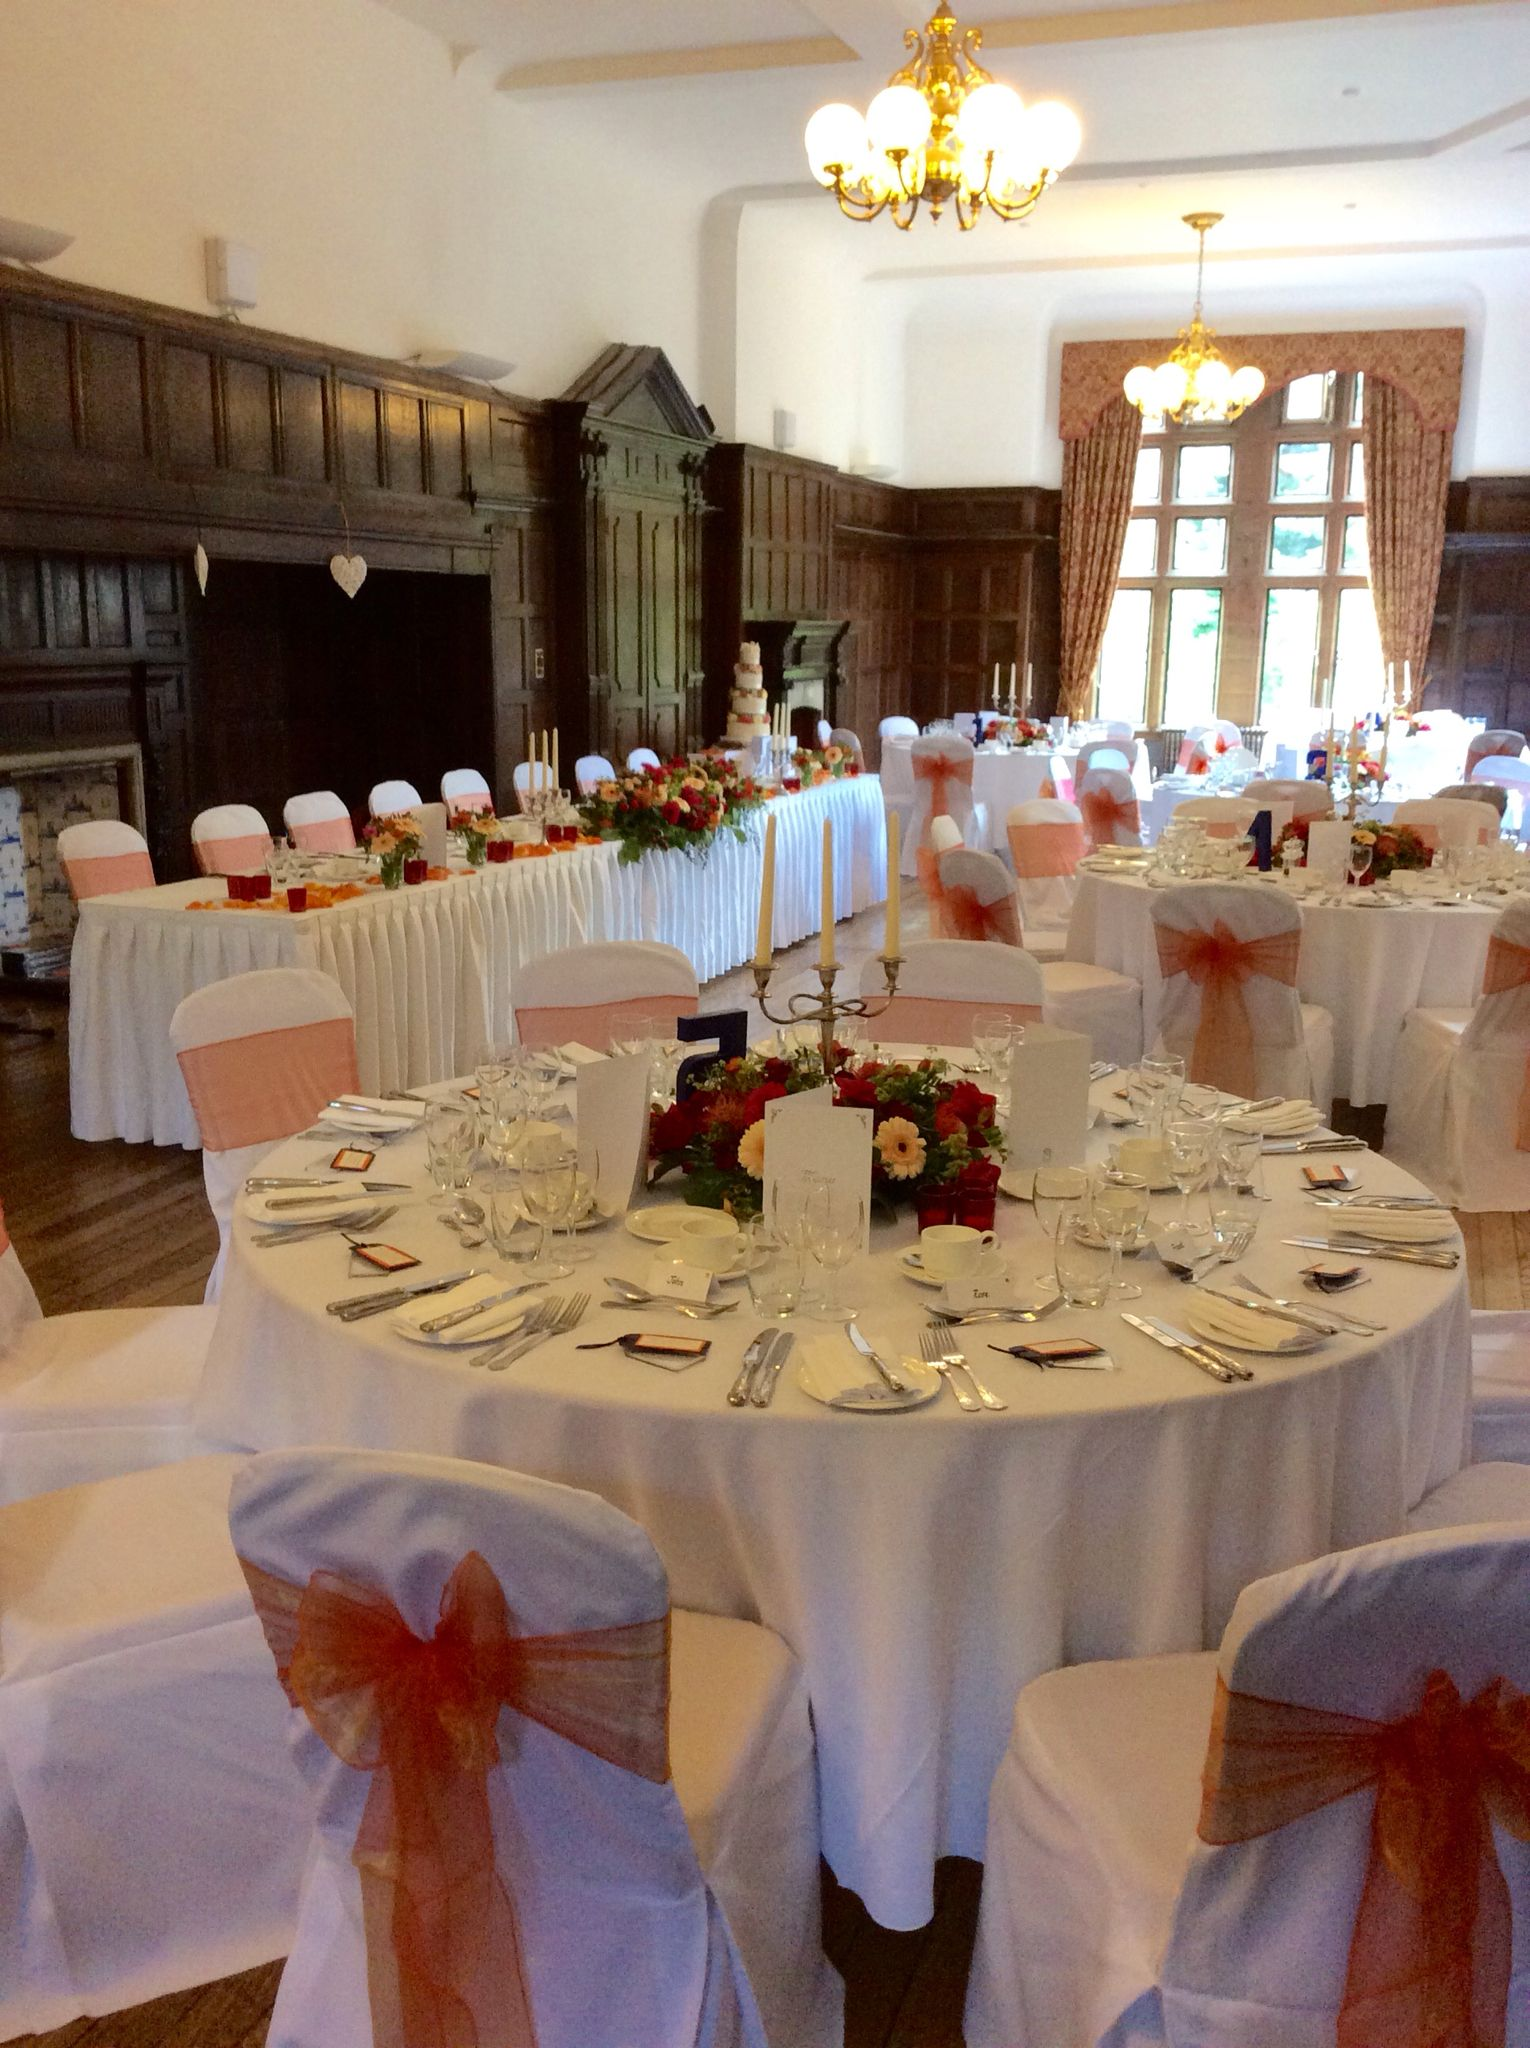 Vibrant Orange Accents For A May Wedding Breakfast Here At Woldingham School Marden Park Surrey Weddings Pinterest